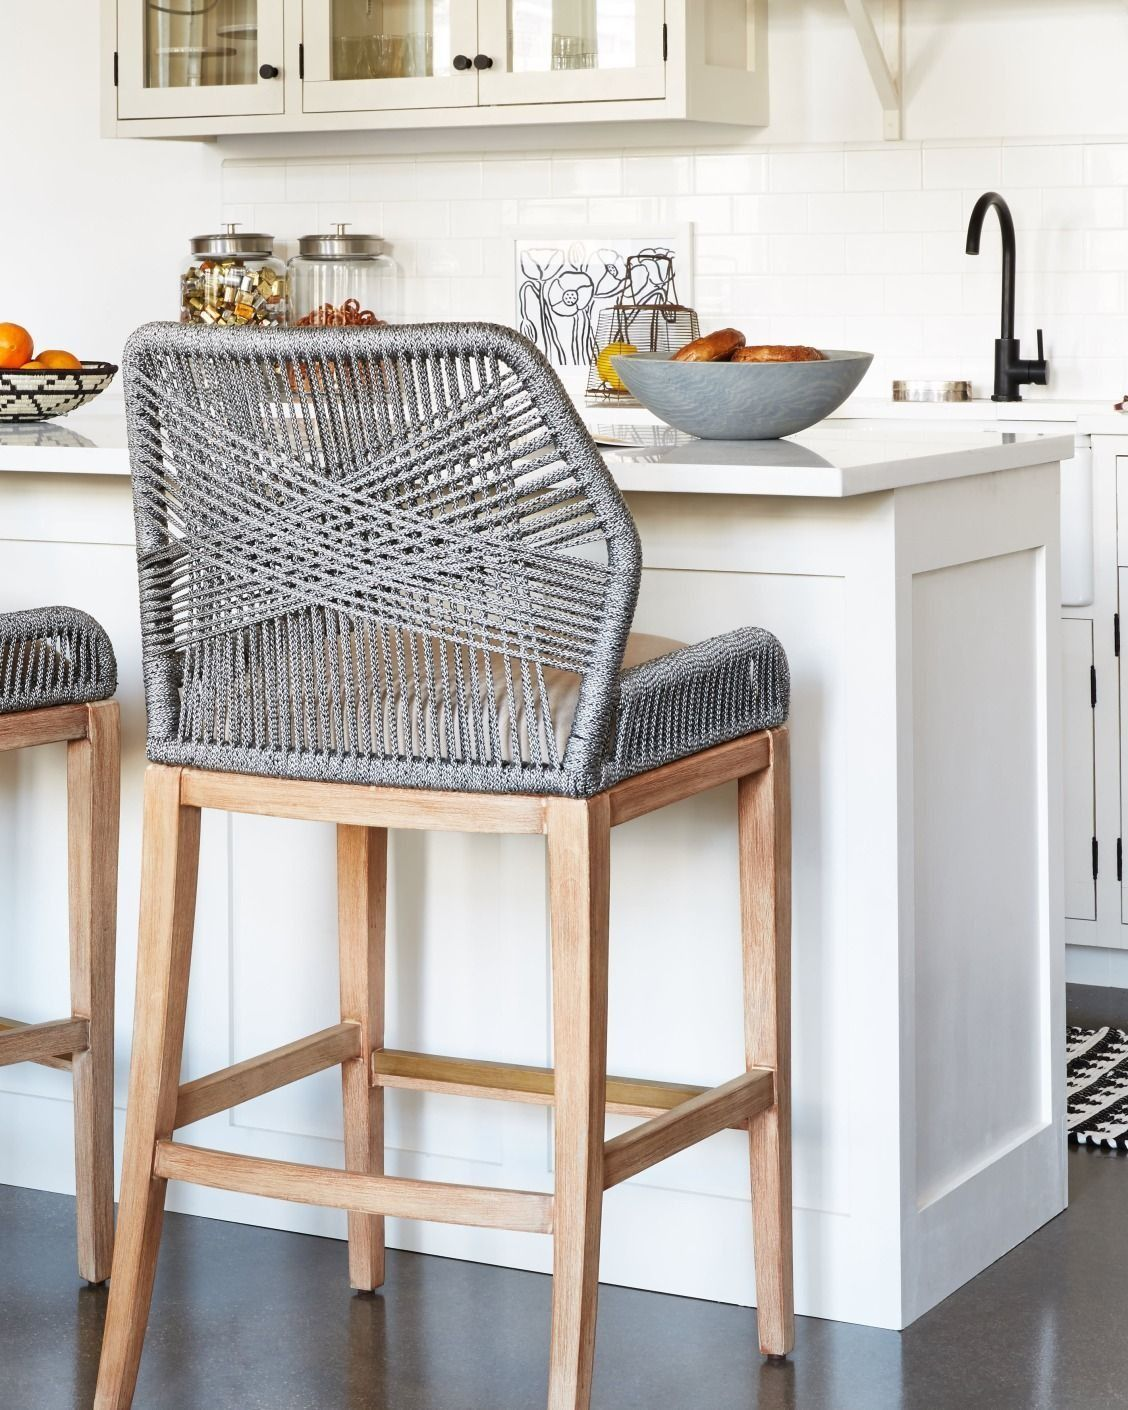 Cool Classy Kitchen Bar Stools Addition to Your Kitchen https ...